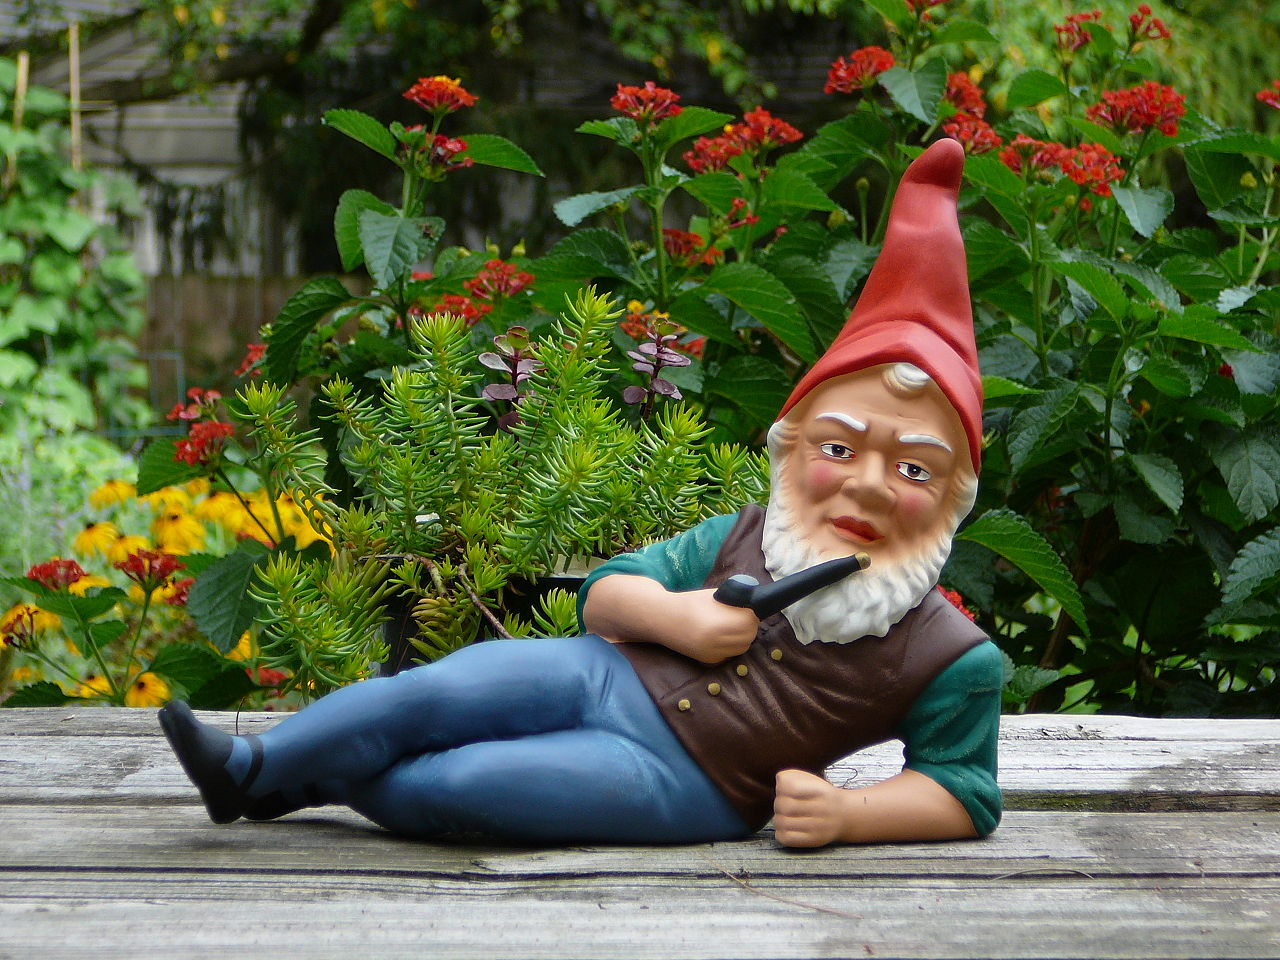 Gnomes! Lockdown & Suez canal Blockage Blamed for Shortage